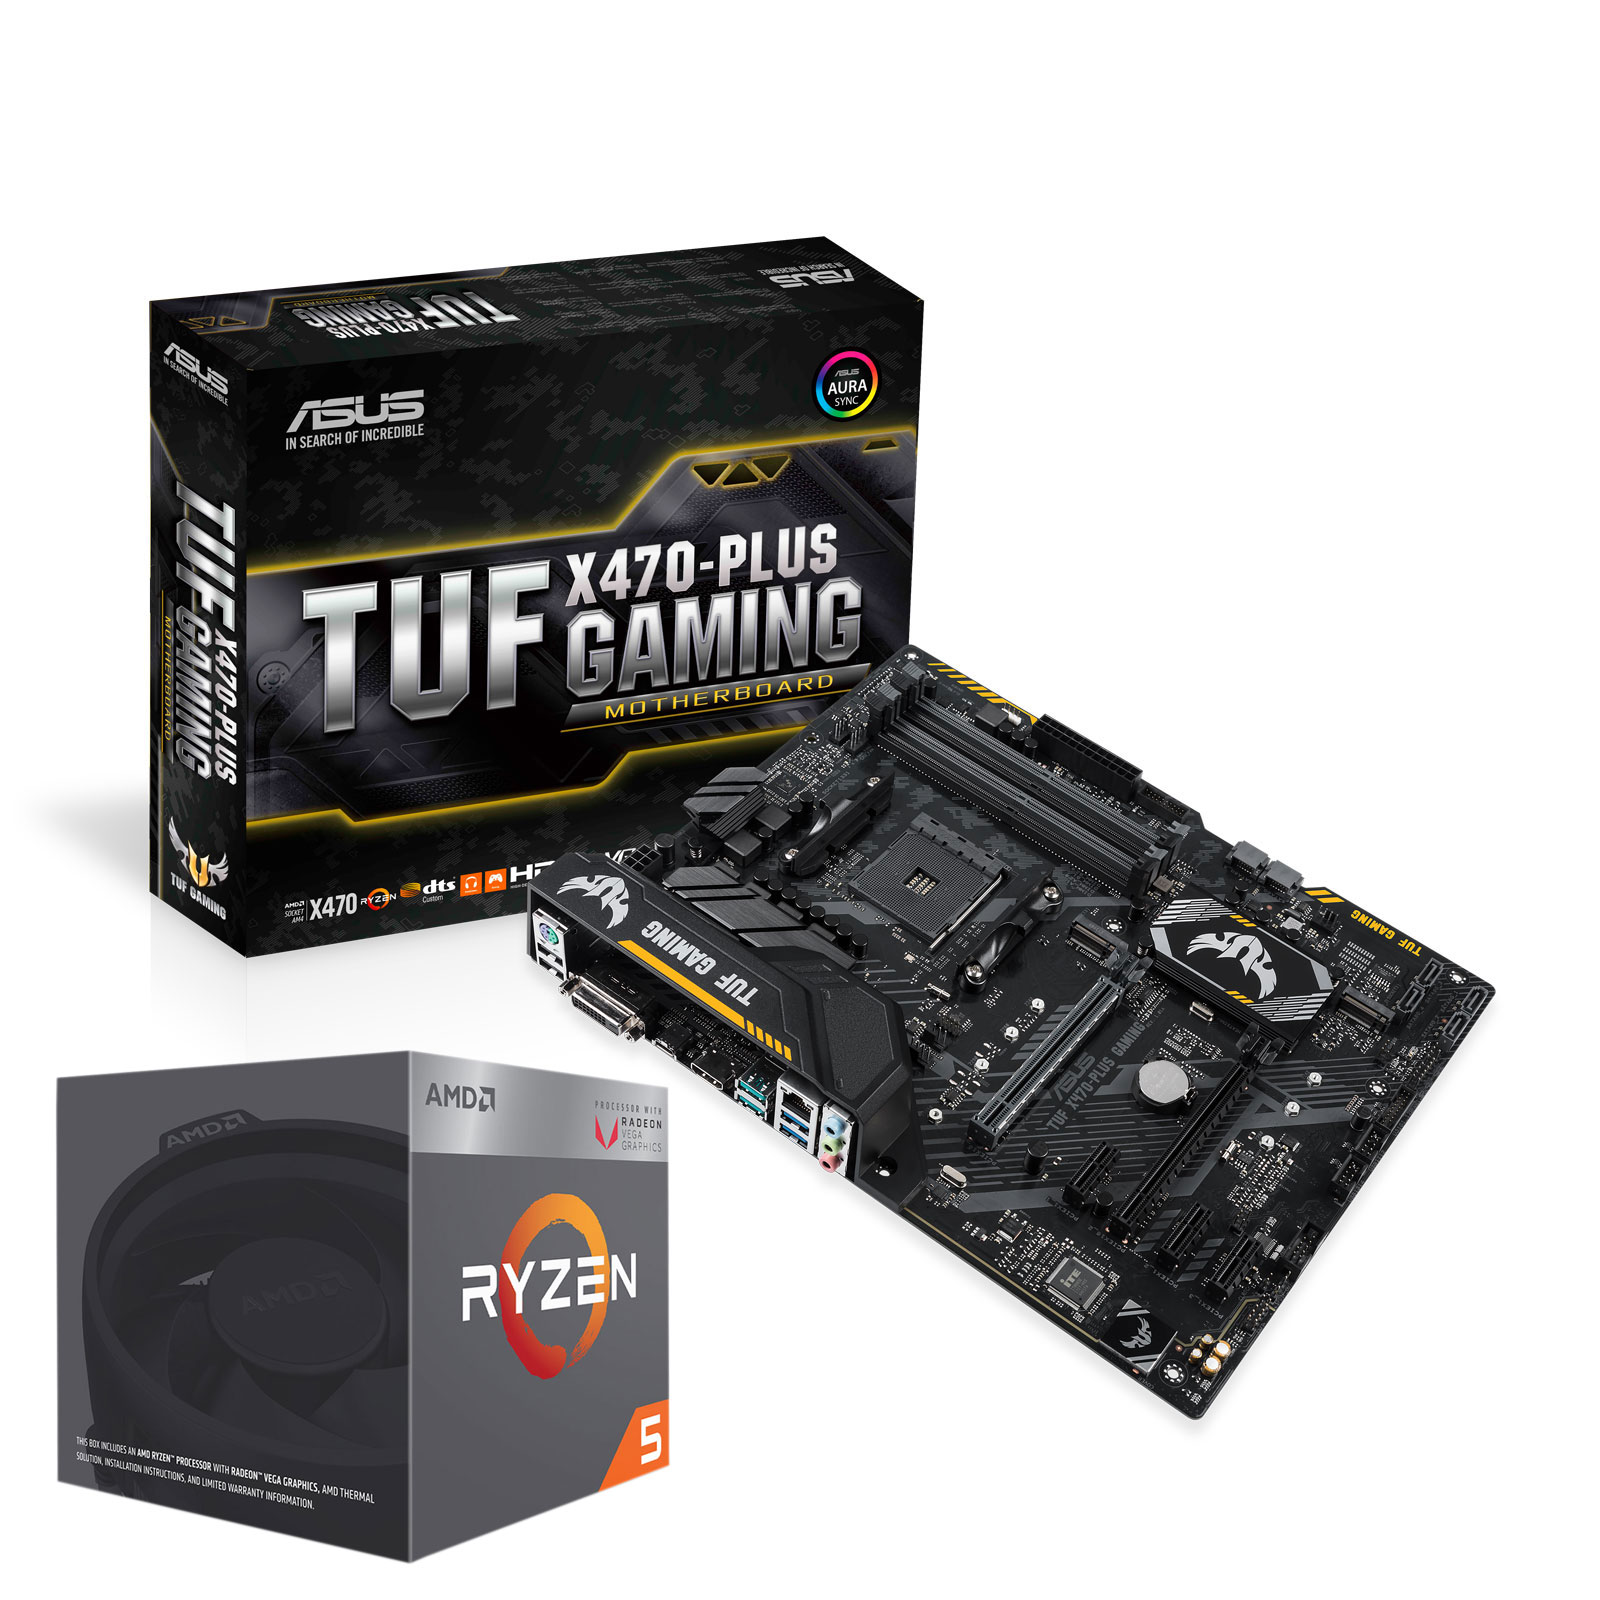 Carte mère ASUS TUF X470-PLUS GAMING + AMD Ryzen 5 2400G Carte mère ATX Socket AM4 AMD X470 + Processeur AMD Ryzen 5 2400G Wraith Stealth Edition